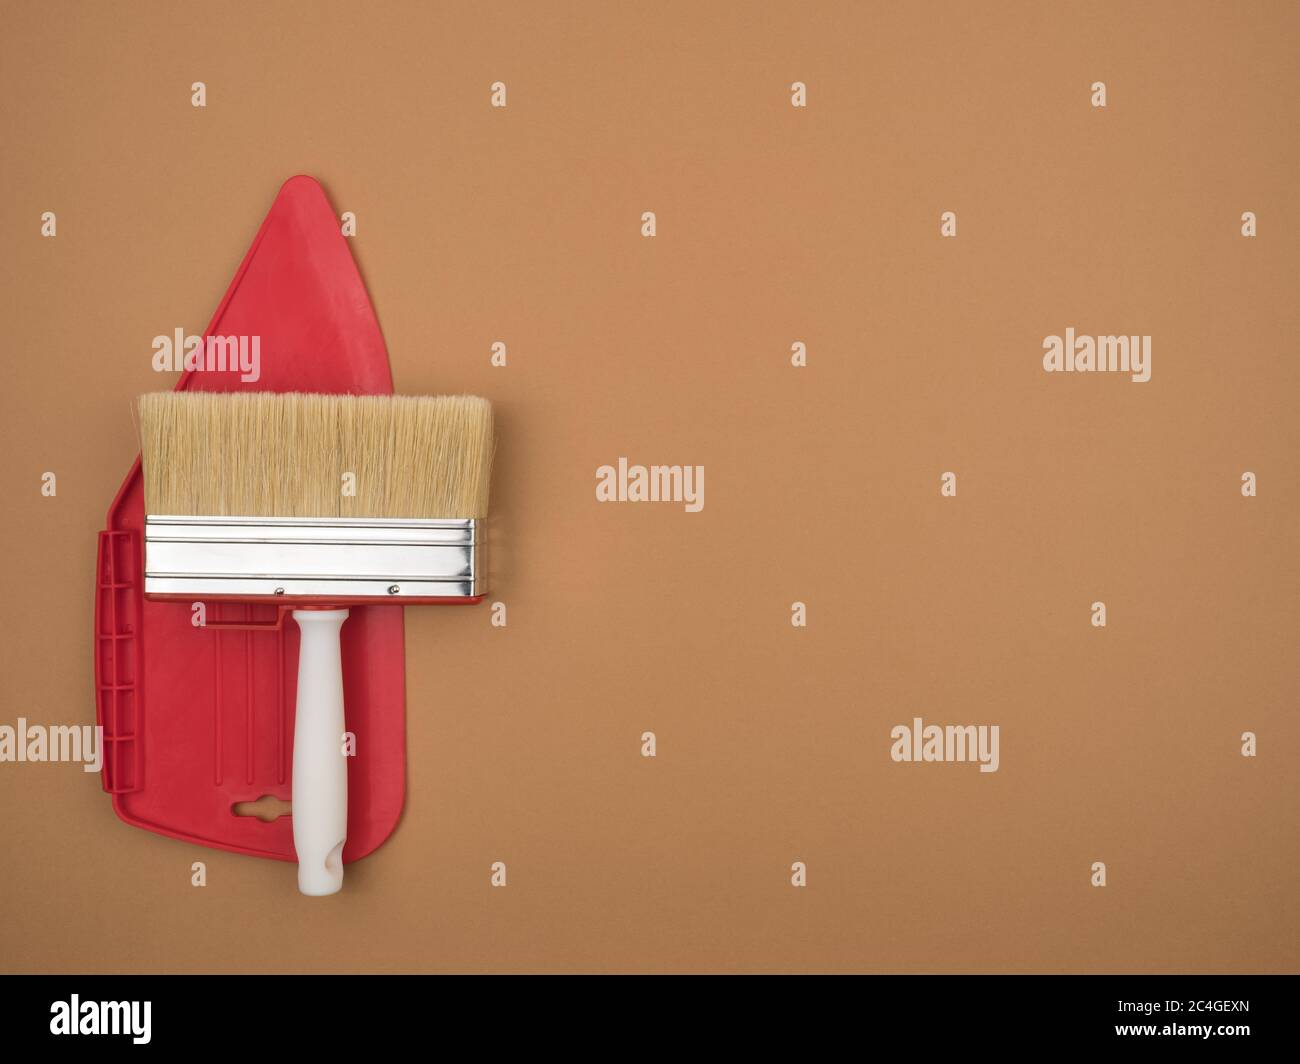 Spatula for smoothing Wallpaper and a large paint brush. Beige background. Stock Photo